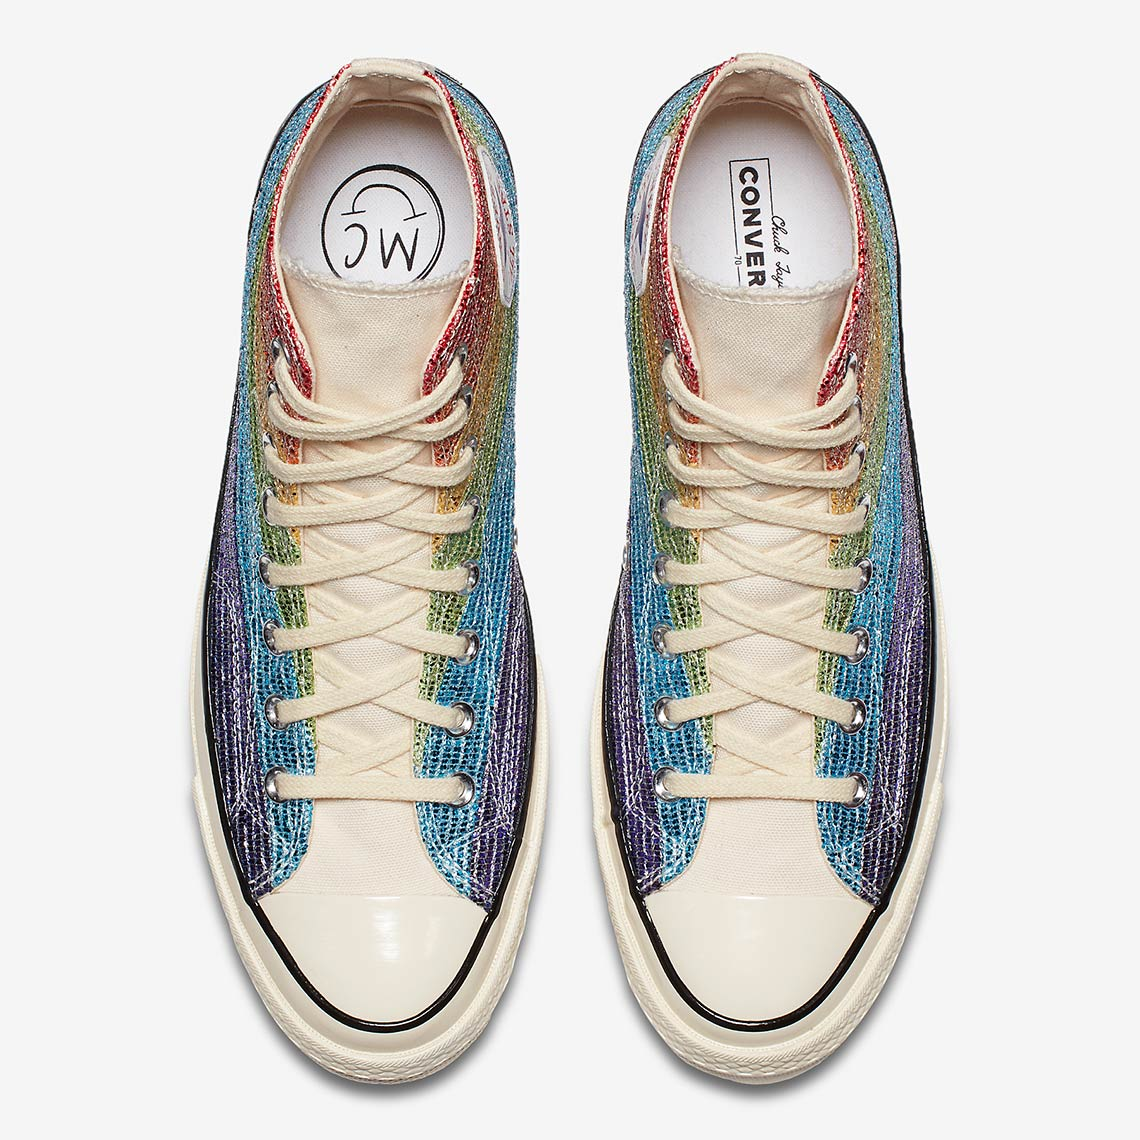 Miley Cyrus x Converse Pride Collection Available Now